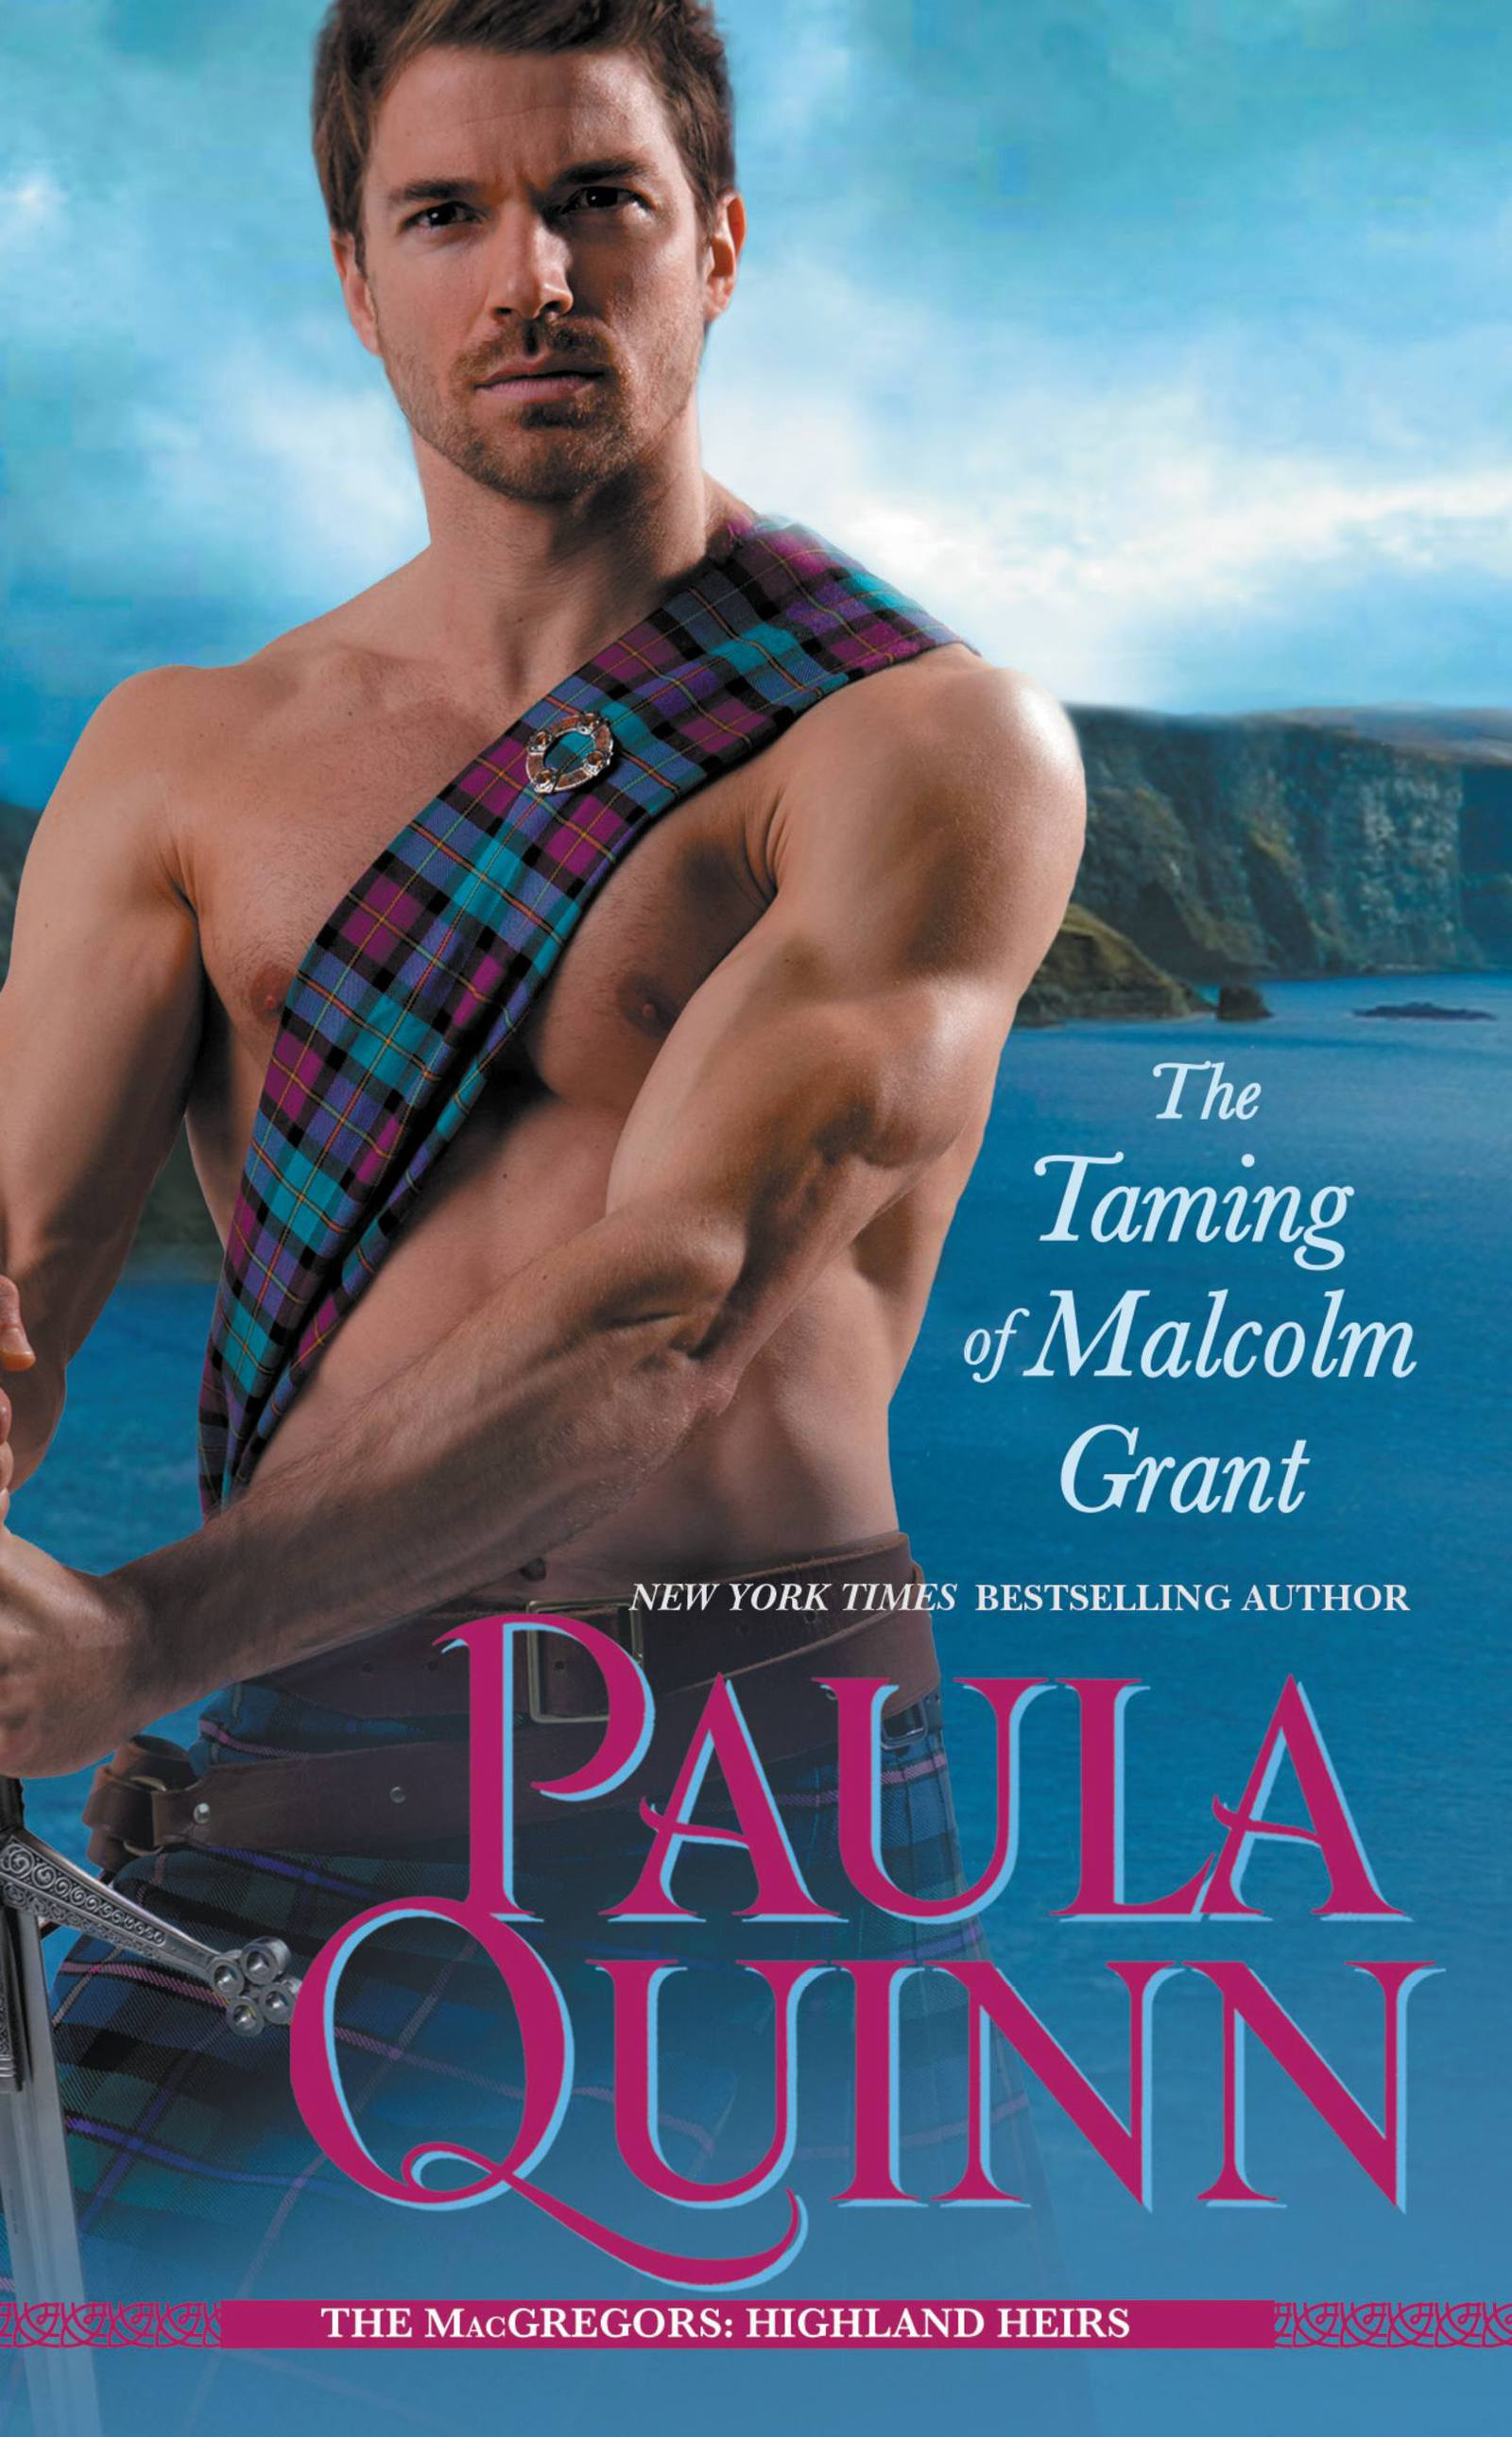 The Taming of Malcolm Grant